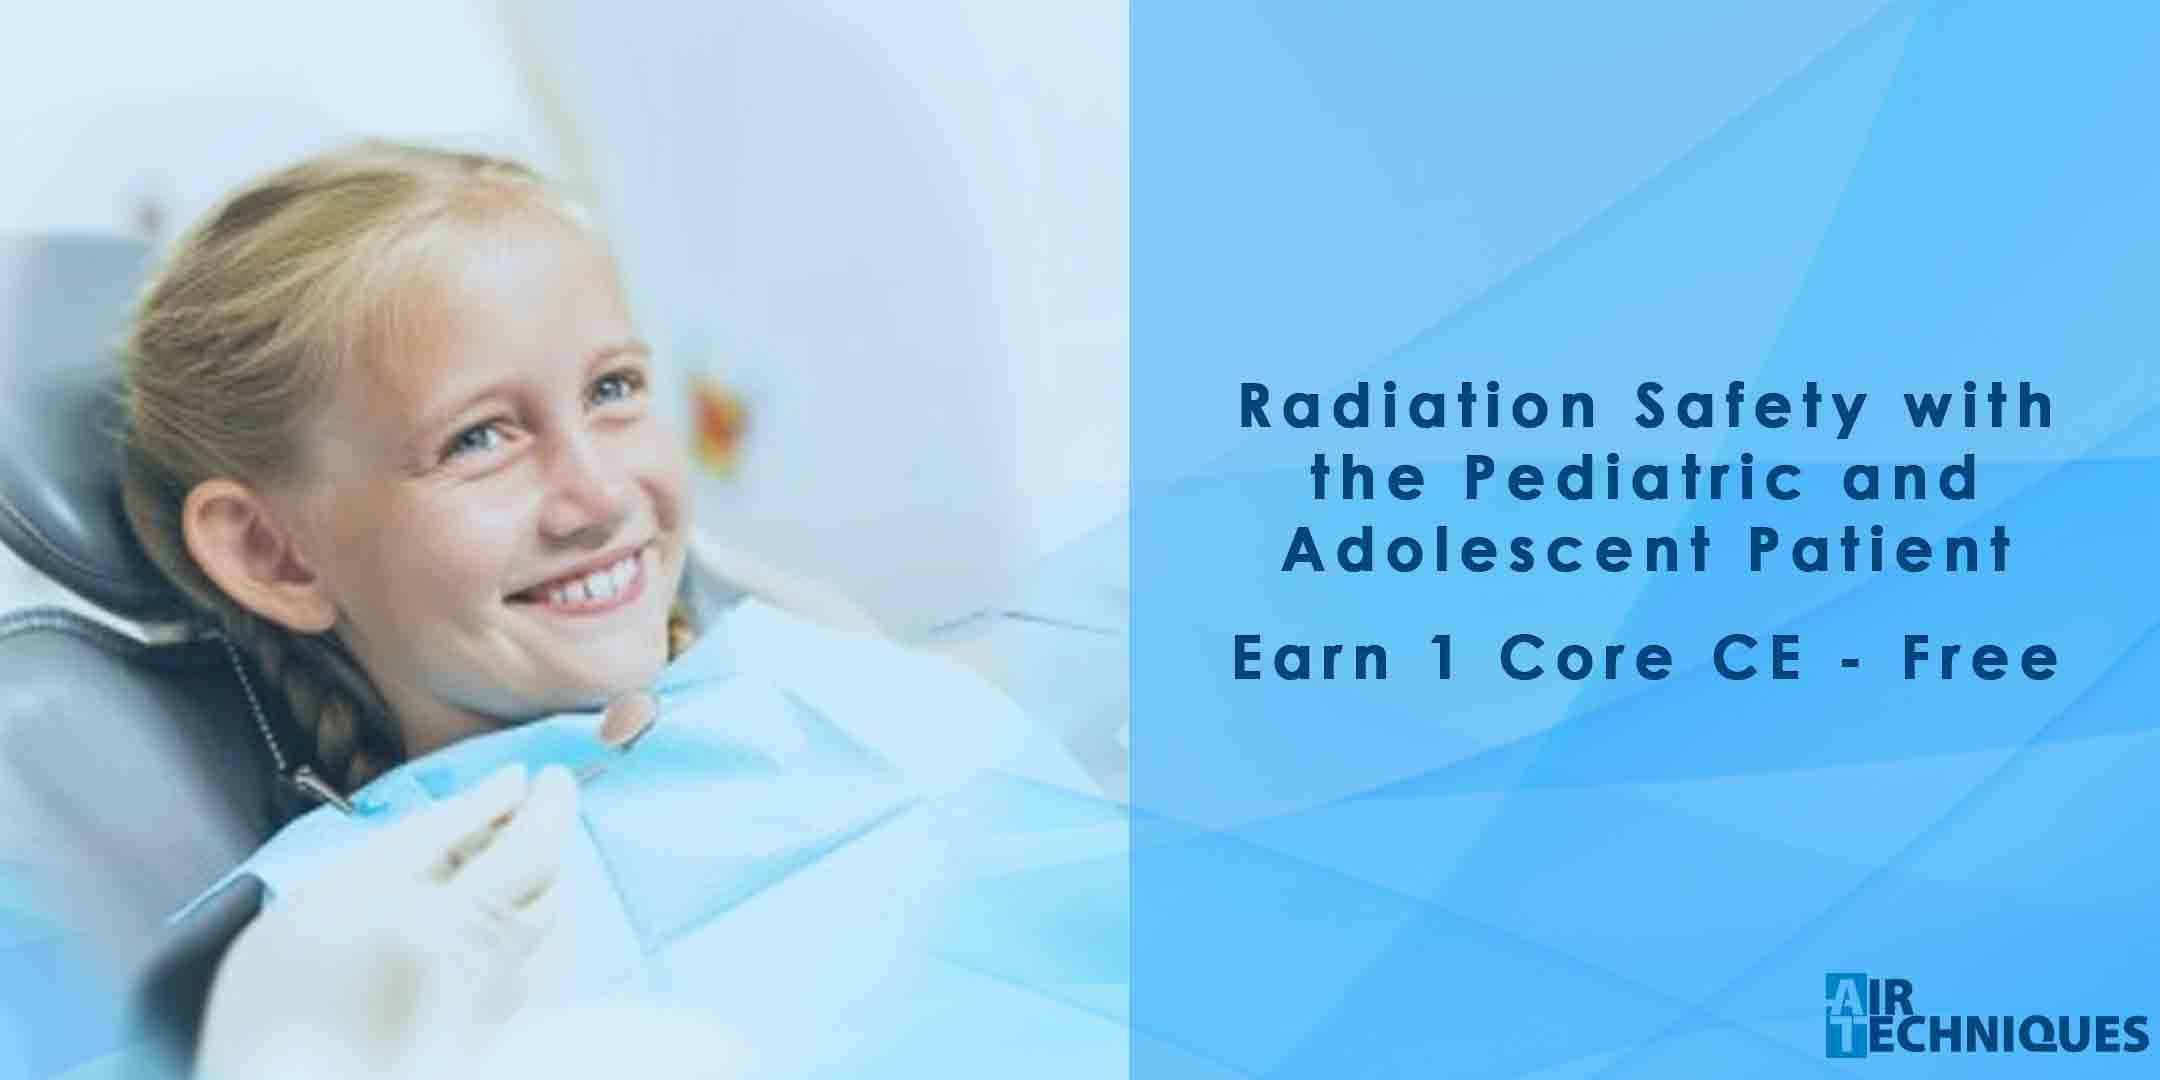 Radiation Safety with the Pediatric and Adole